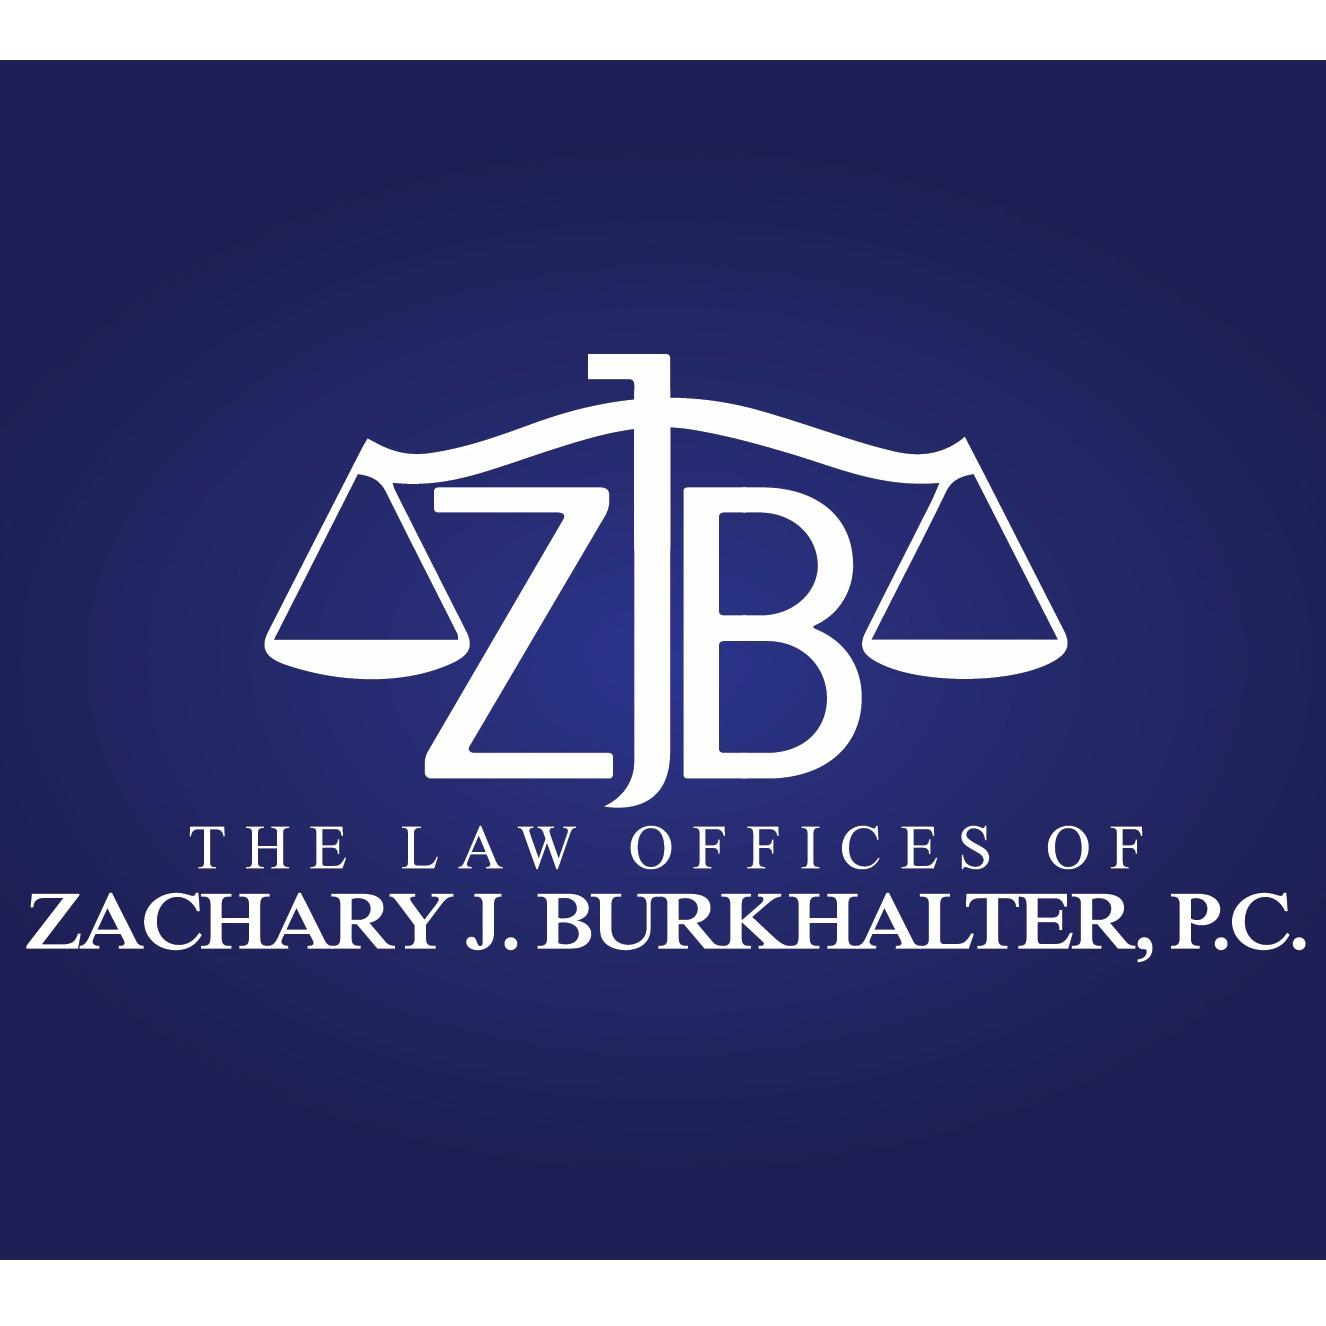 The Law Offices of Zachary J Burkhalter, PC - Rome, GA 30161 - (706)290-9037 | ShowMeLocal.com